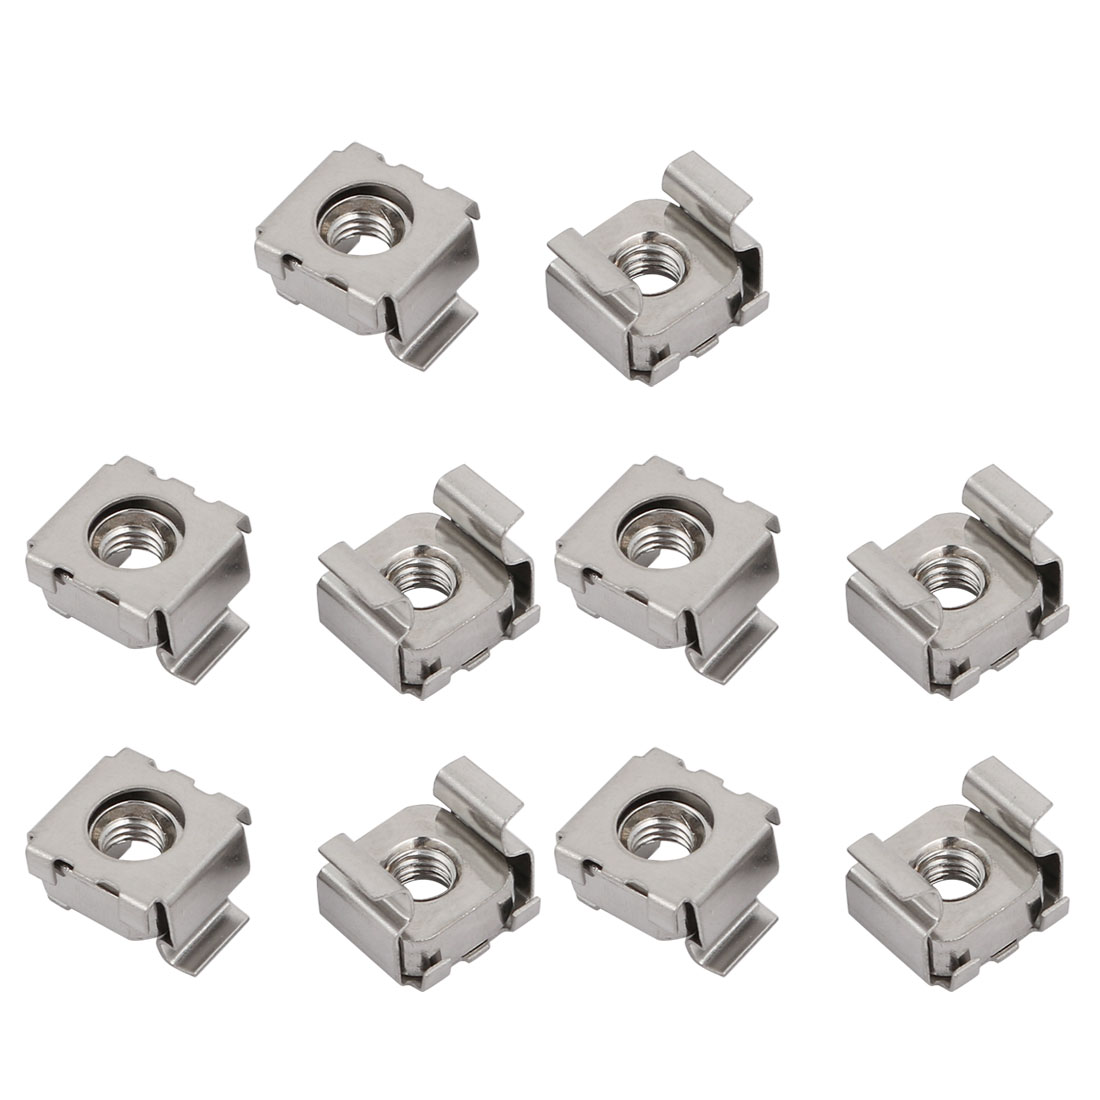 10pcs M5 304 Stainless Steel Cage Nut Silver Tone for Server Shelf Cabinet